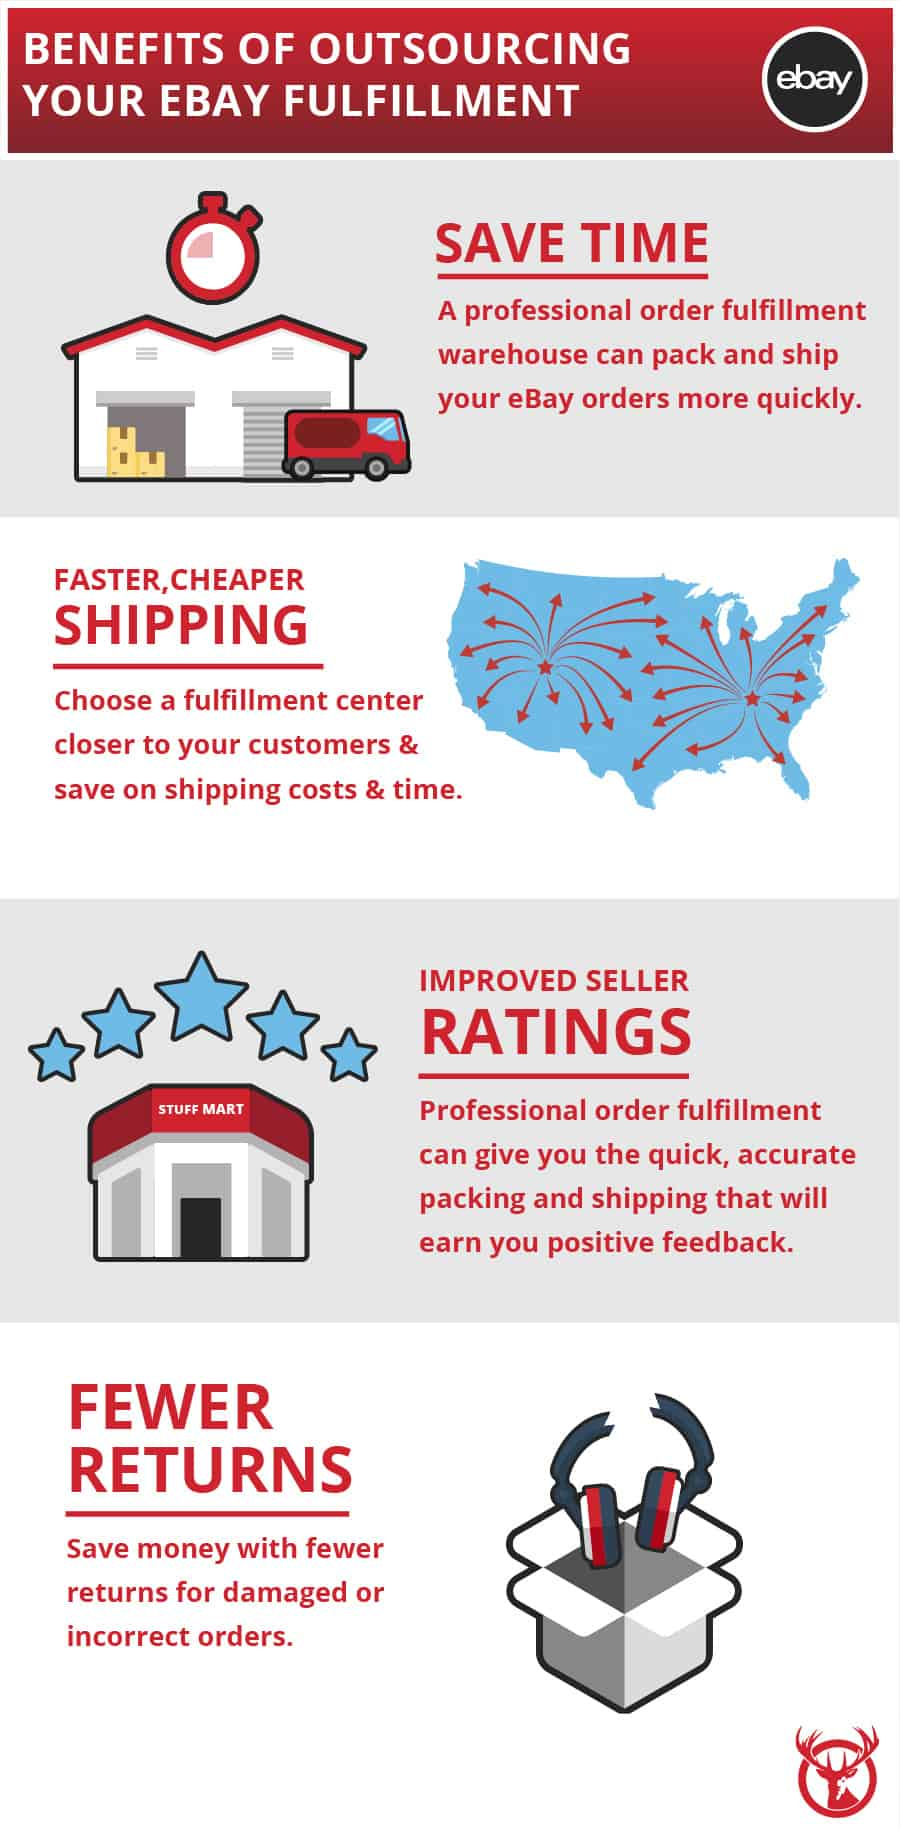 benefits of outsourcing ebay fulfillment